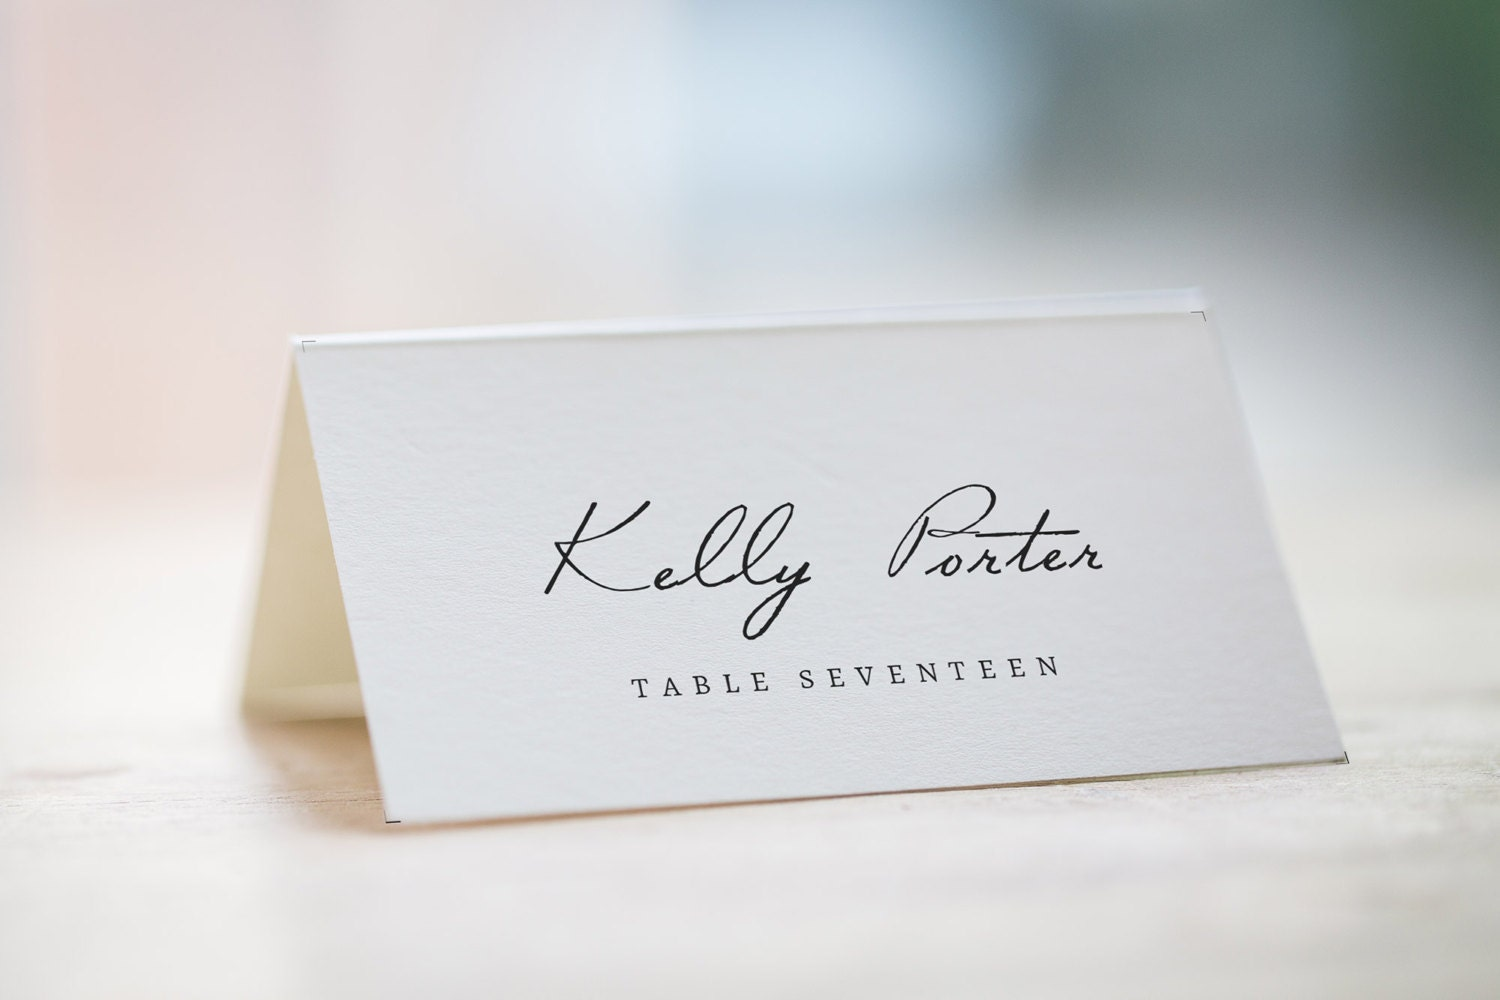 Sassy image pertaining to free printable wedding place cards